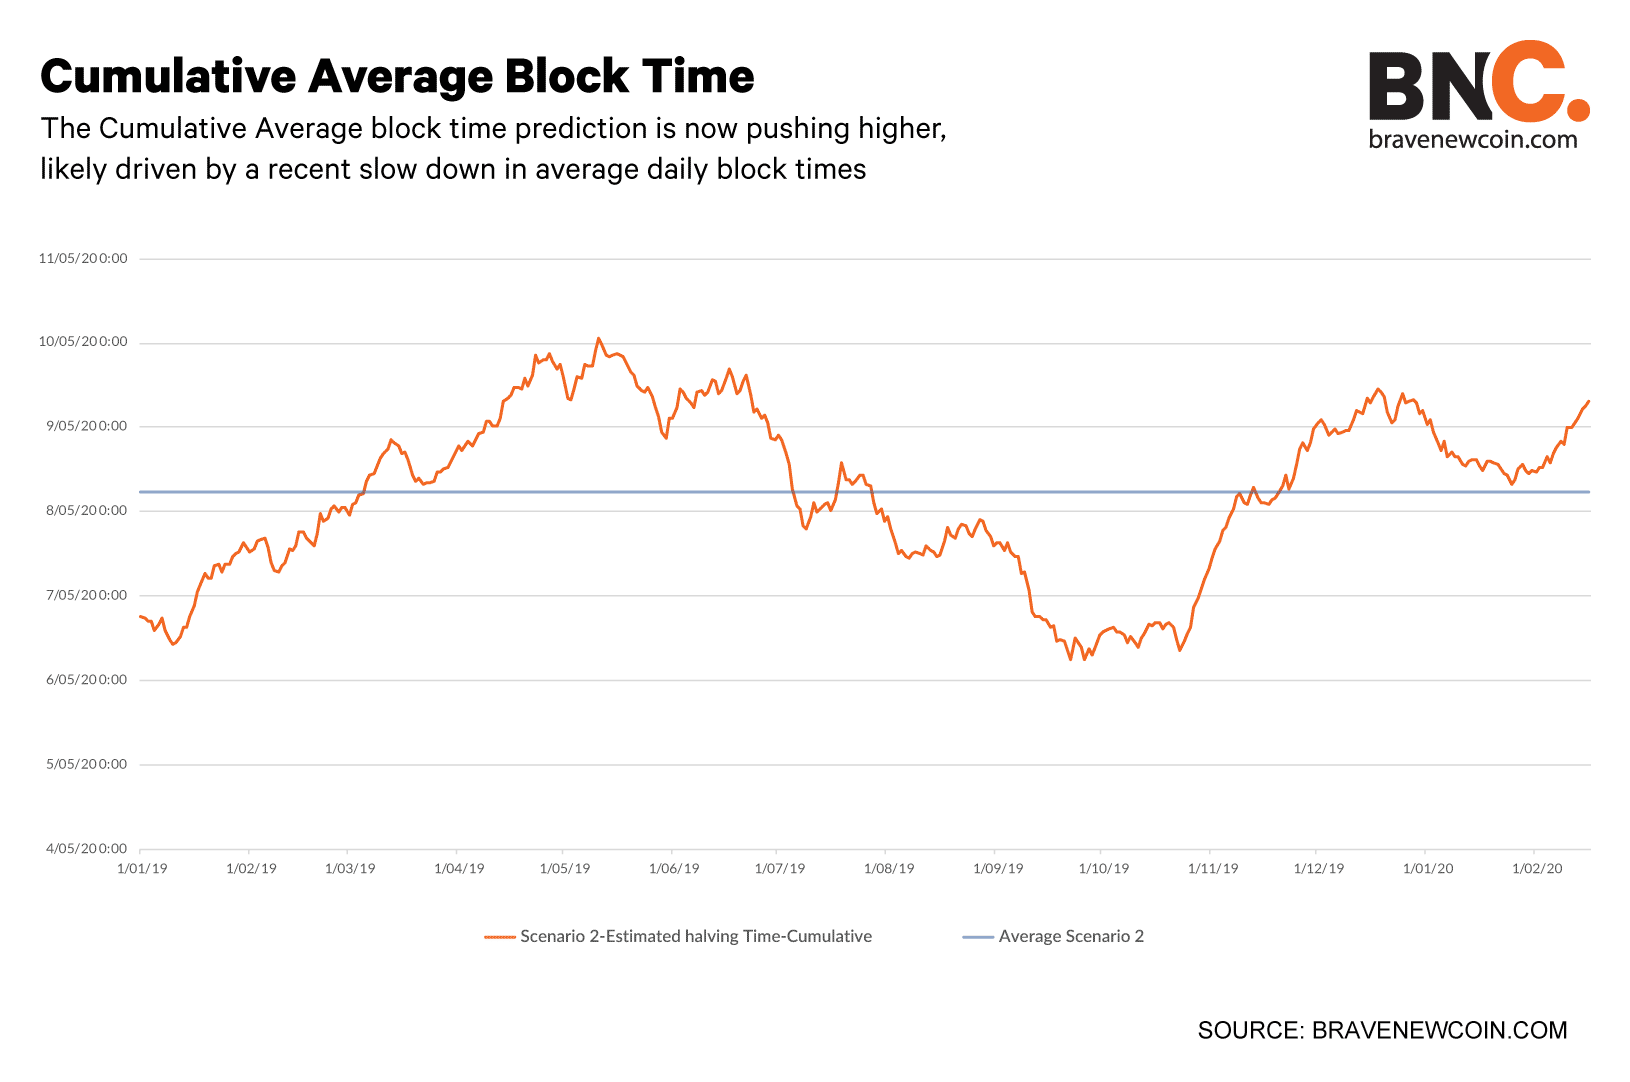 Comulative-average-block-time-Subheading (1)